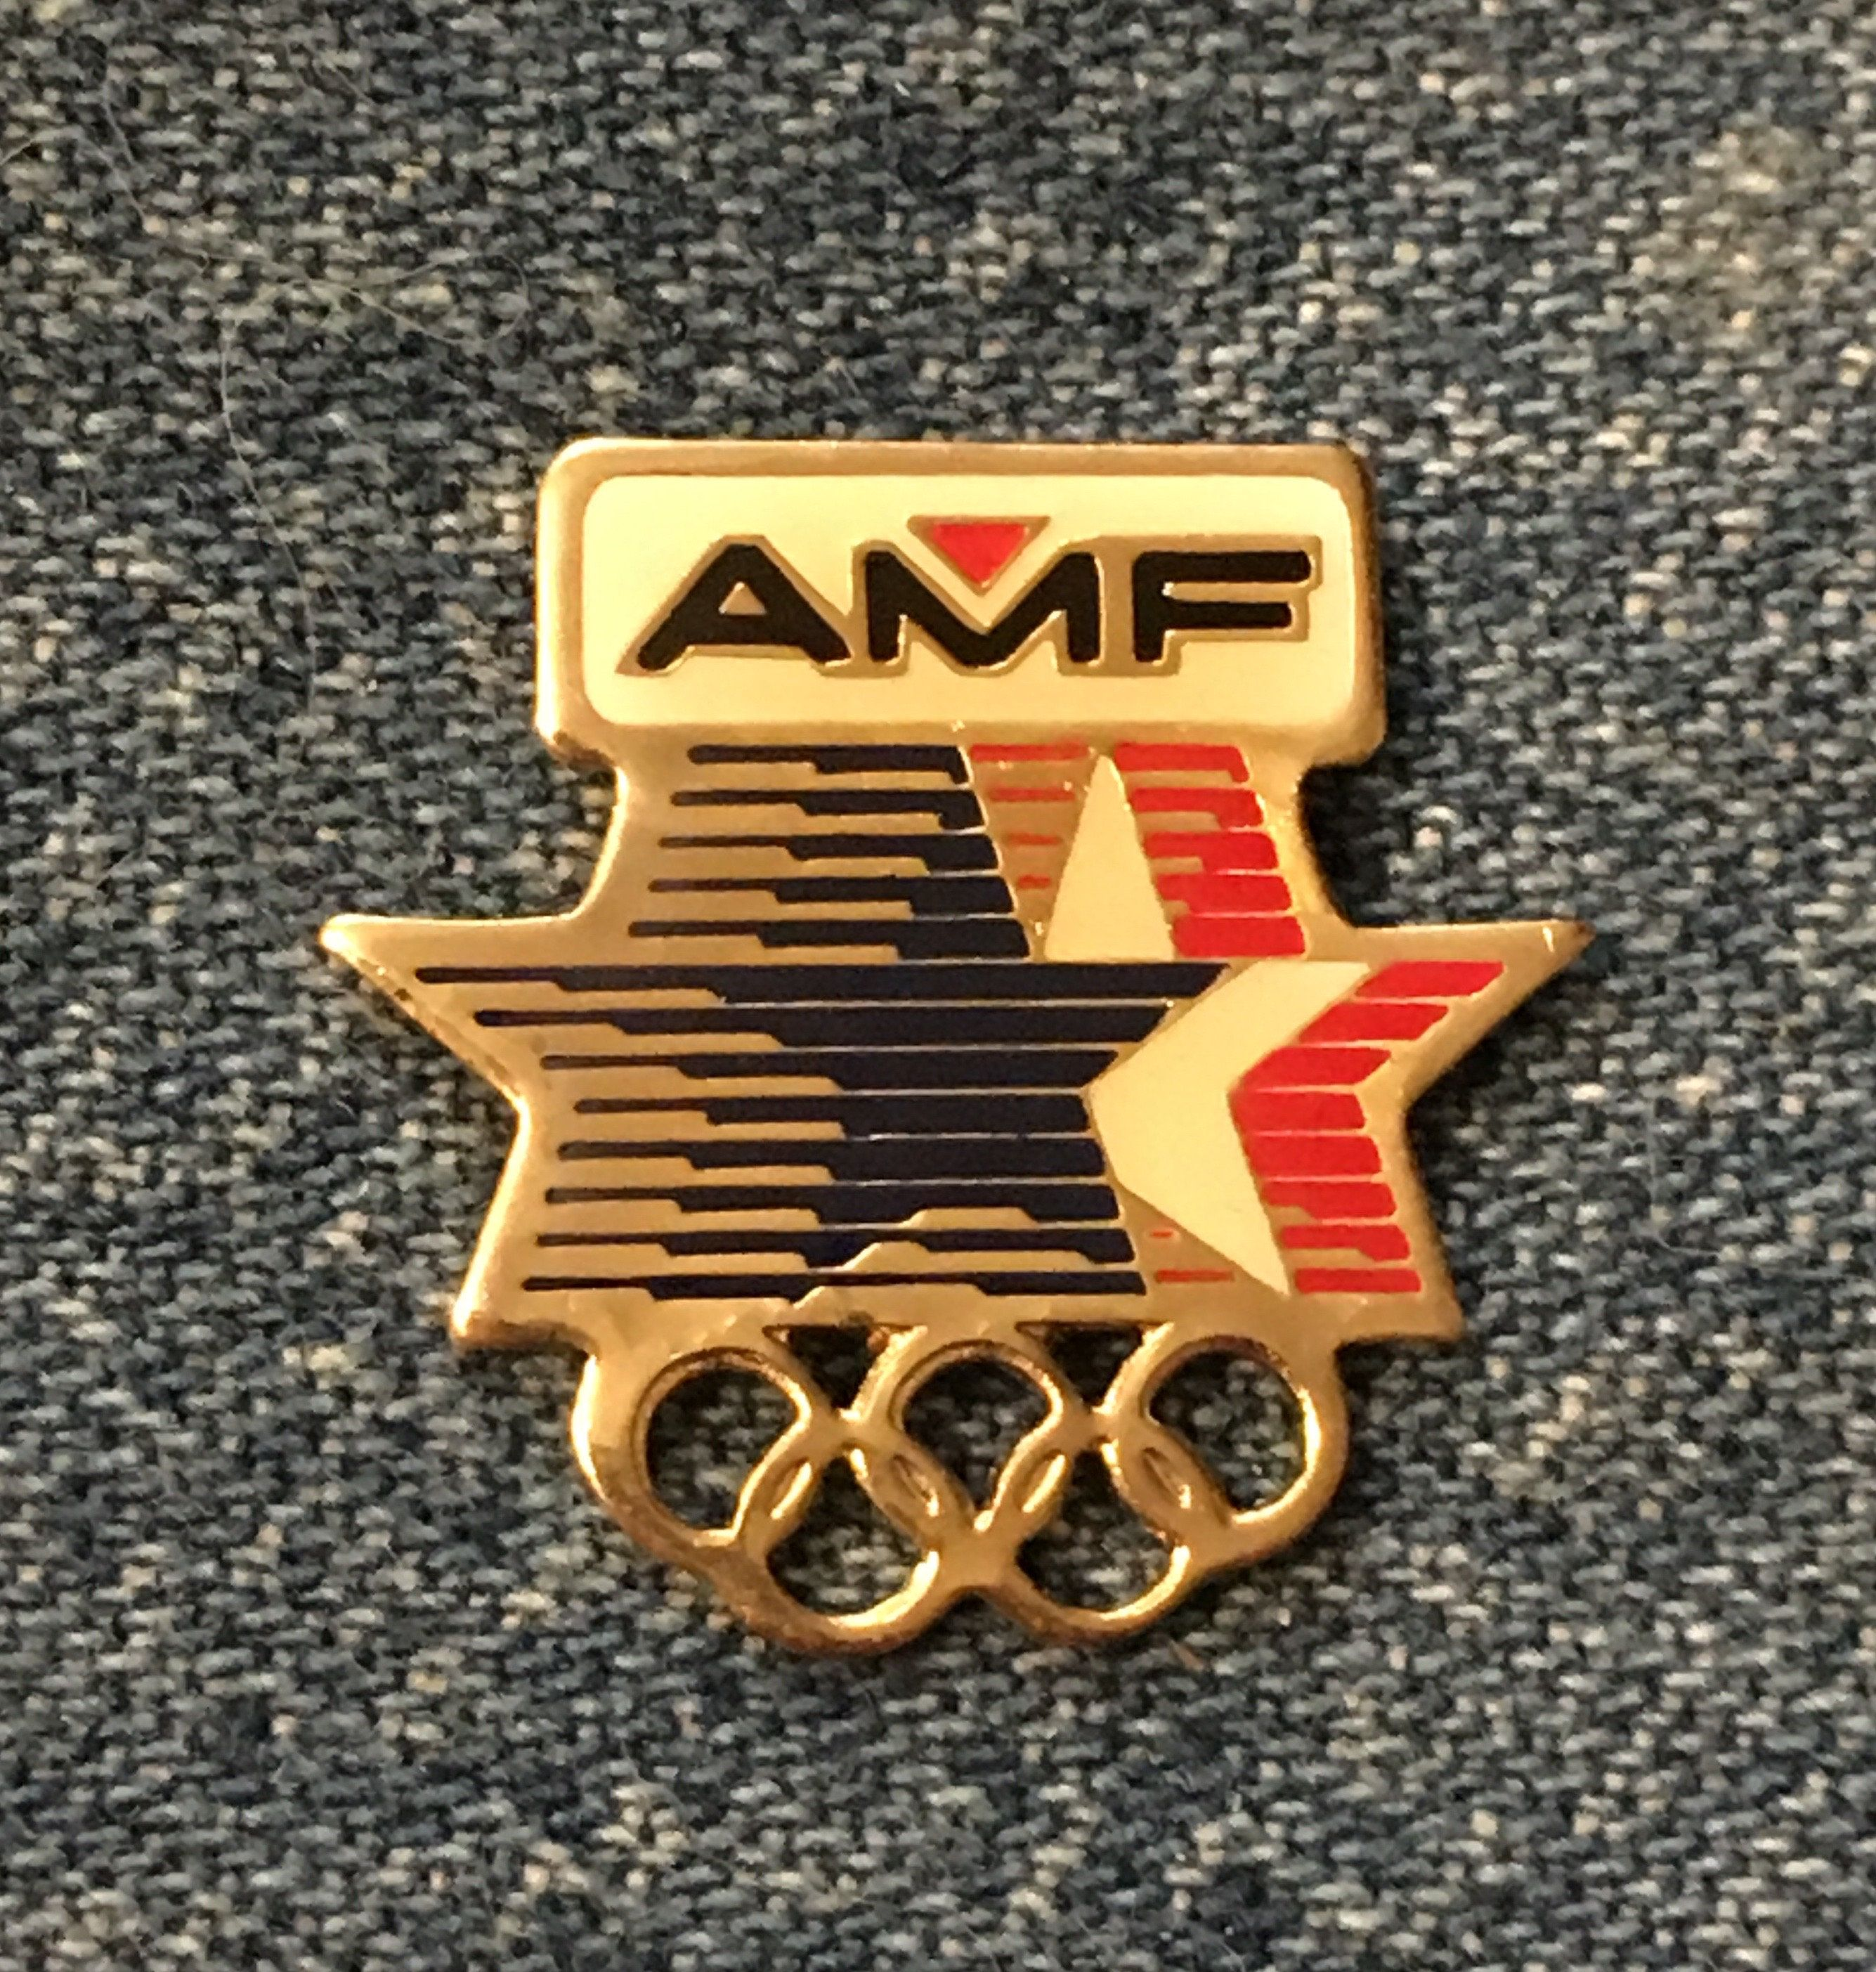 Amf Olympic Sponsor Pin 1984 Los Angeles With Stars In Motion